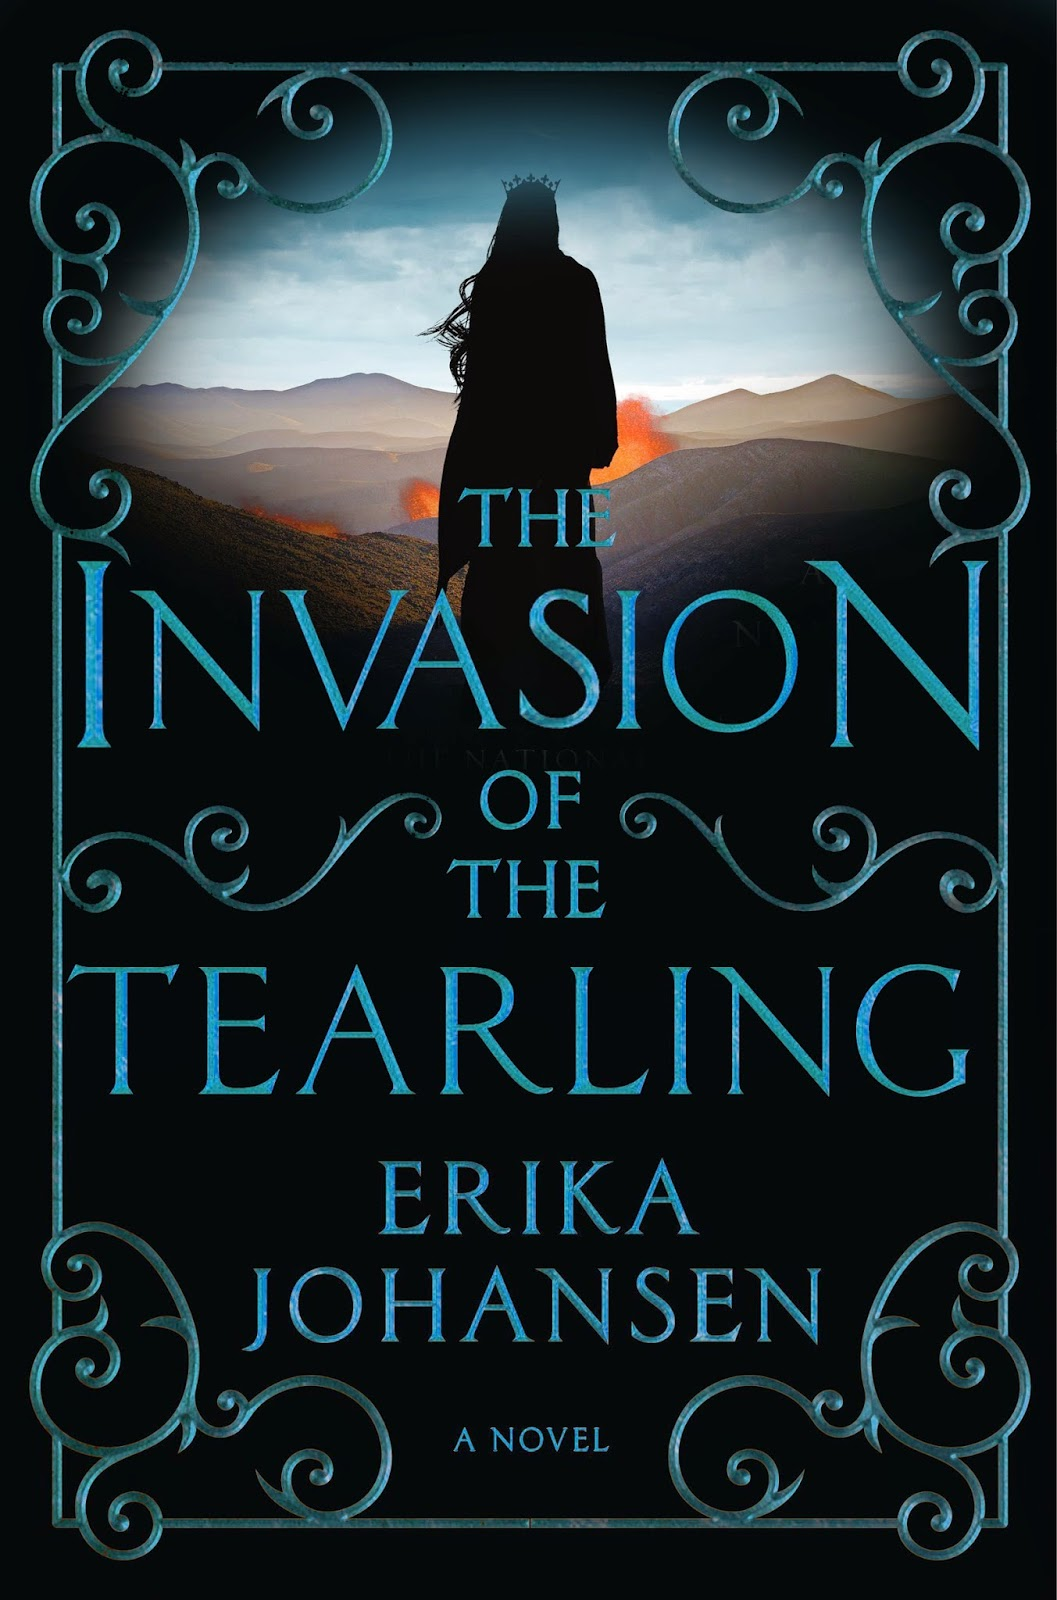 The Invasion of the Tearling by Erika Johansen (own version)